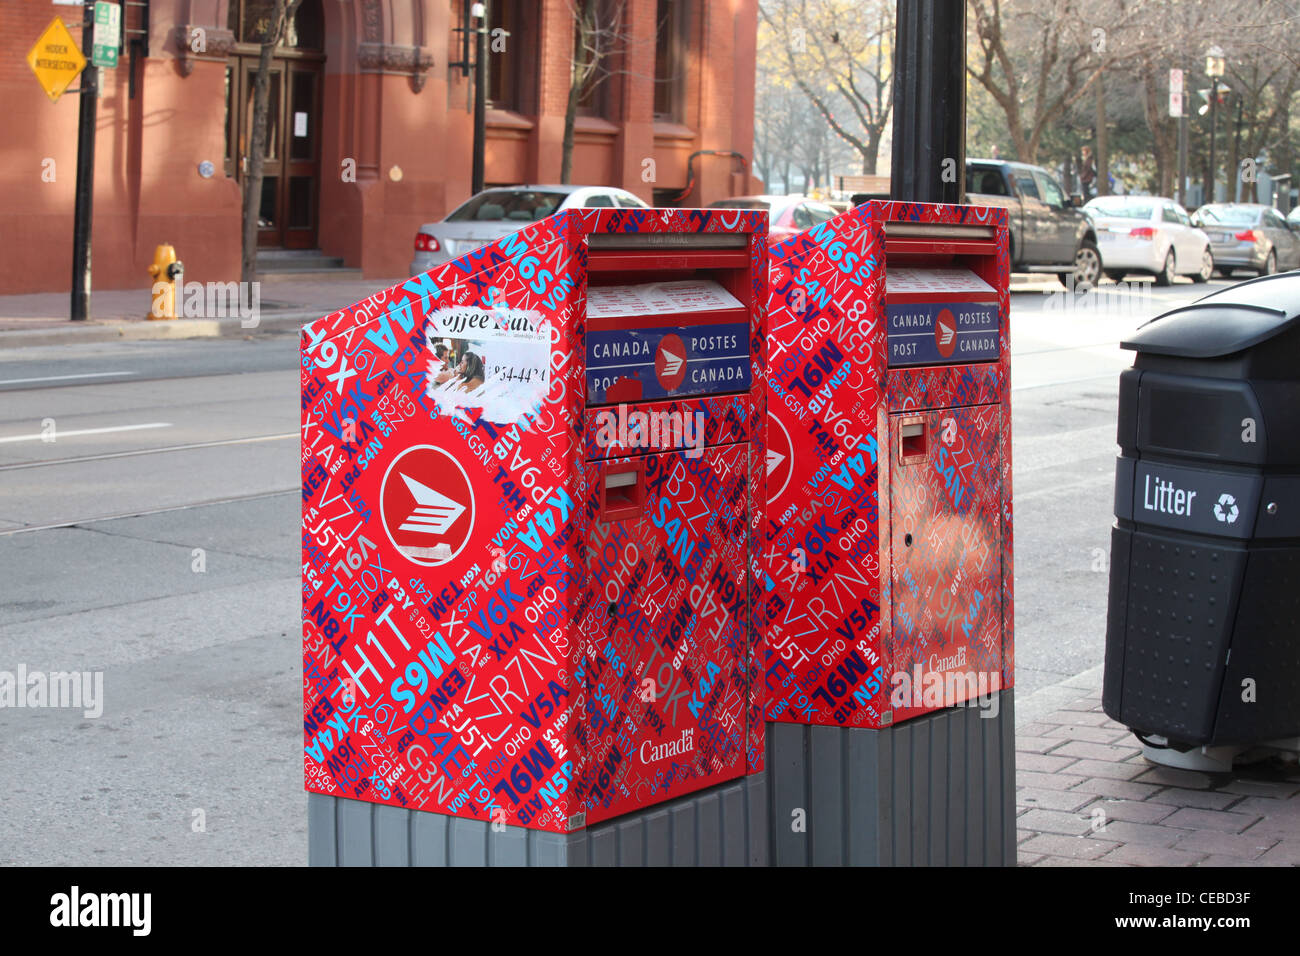 Mail box with Canadian postal codes on Toronto street - Stock Image